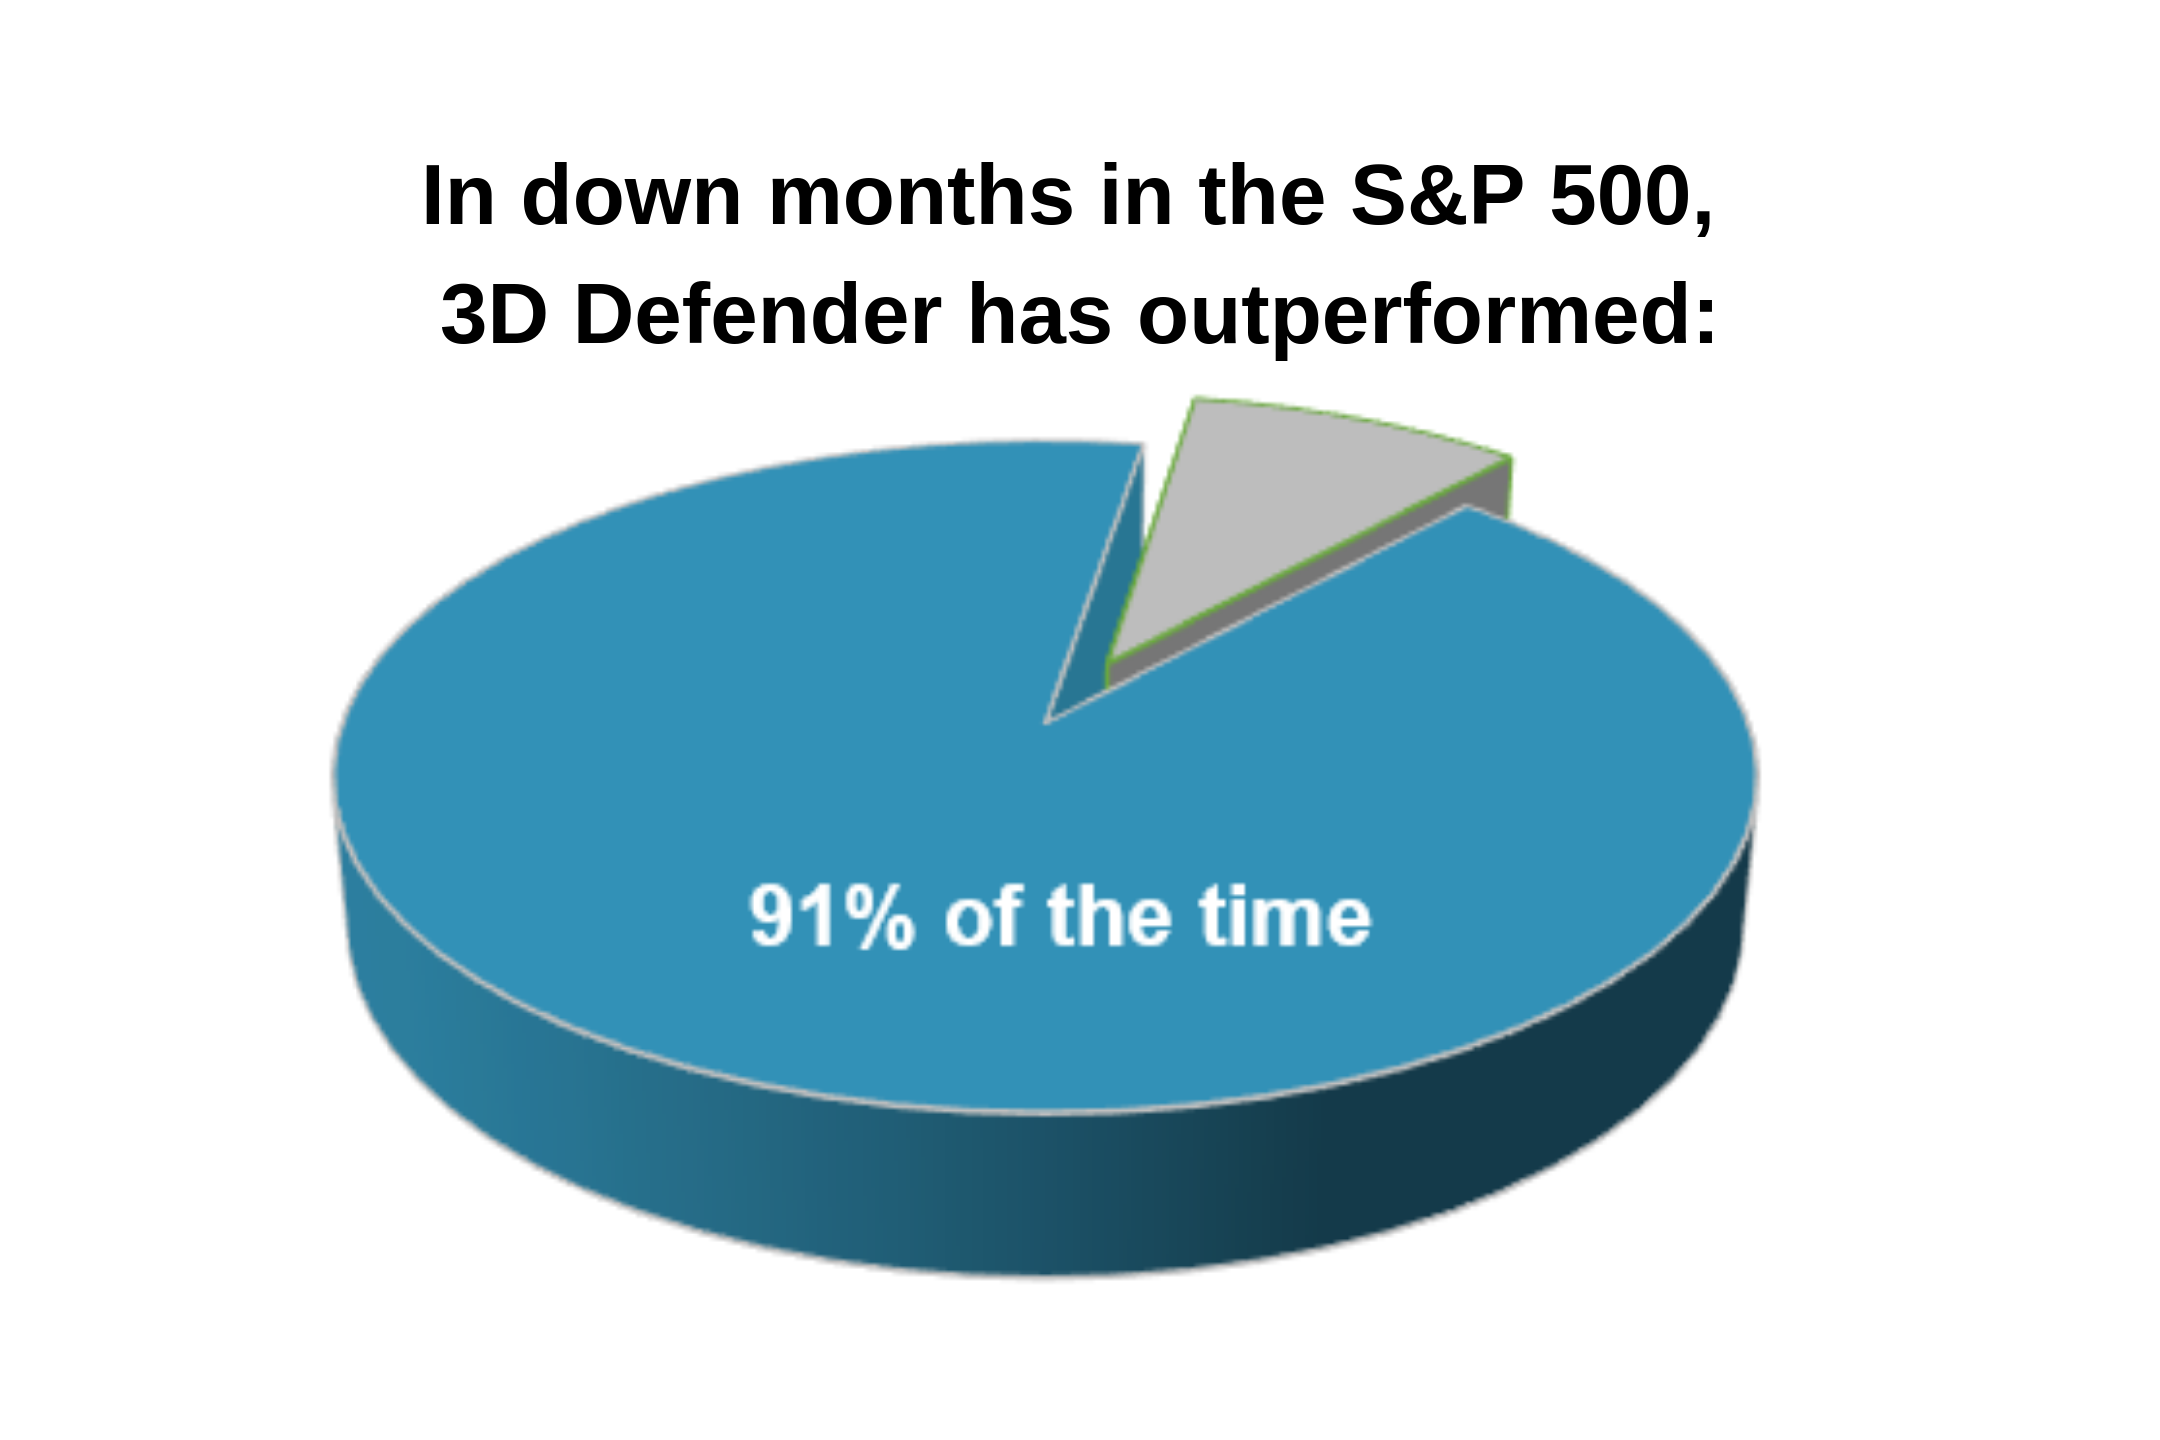 Pie Chart showing that 3D Defender outperformed the S&P 500 in down months 91% of the time